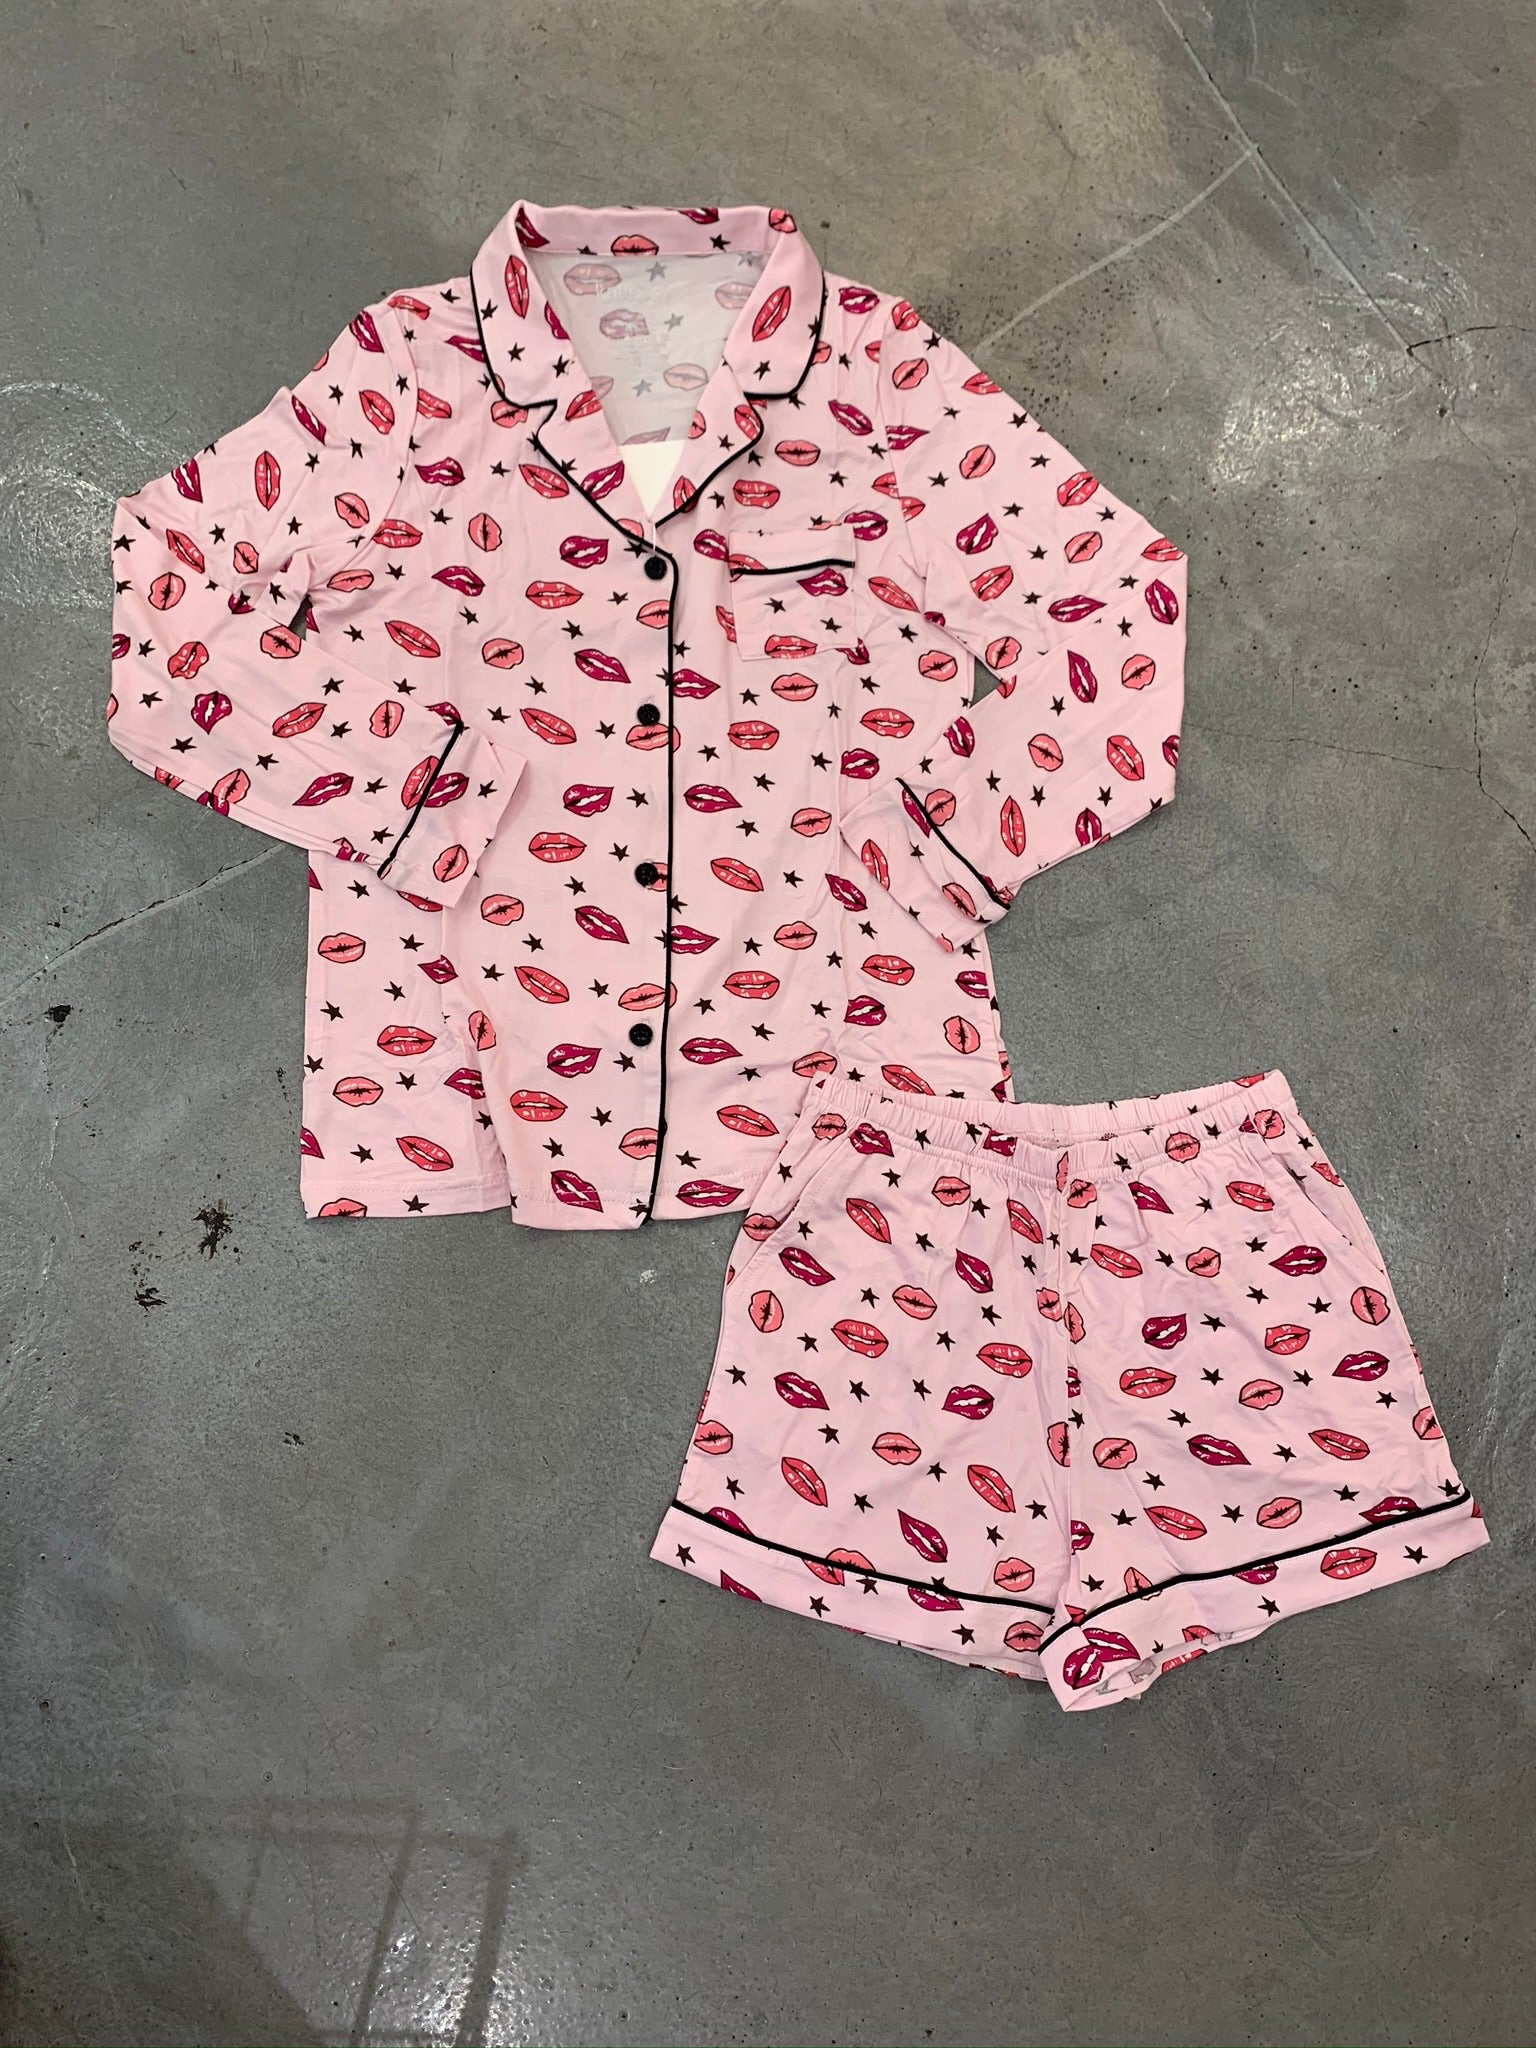 Katie J Julia Shorts Set, Be Mine